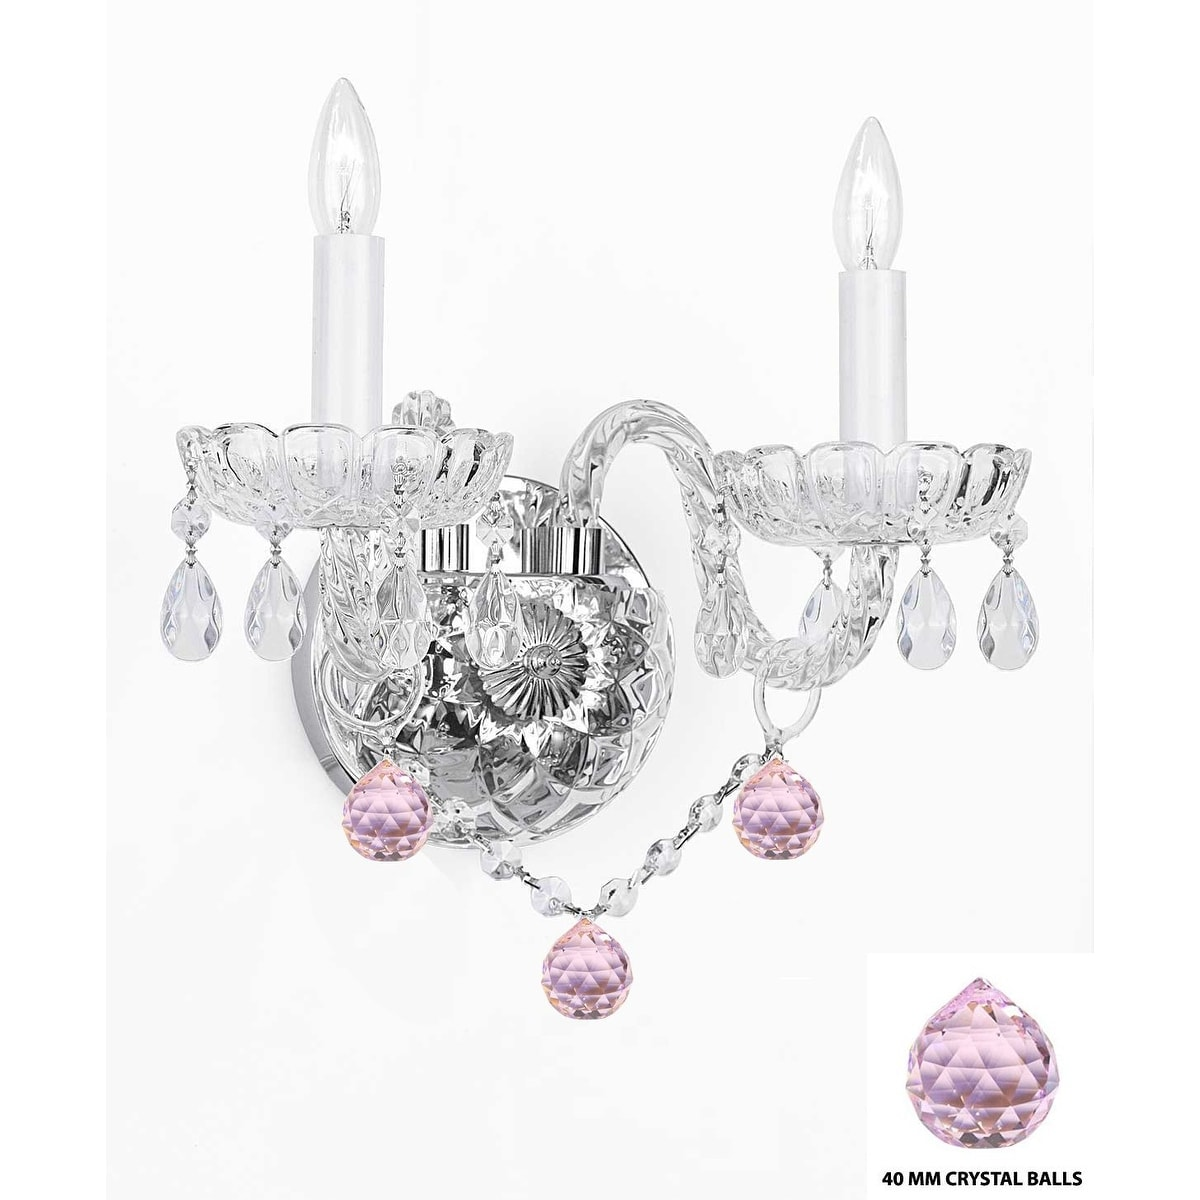 Crystal wall sconce chandelier lighting with pink crystal balls cl